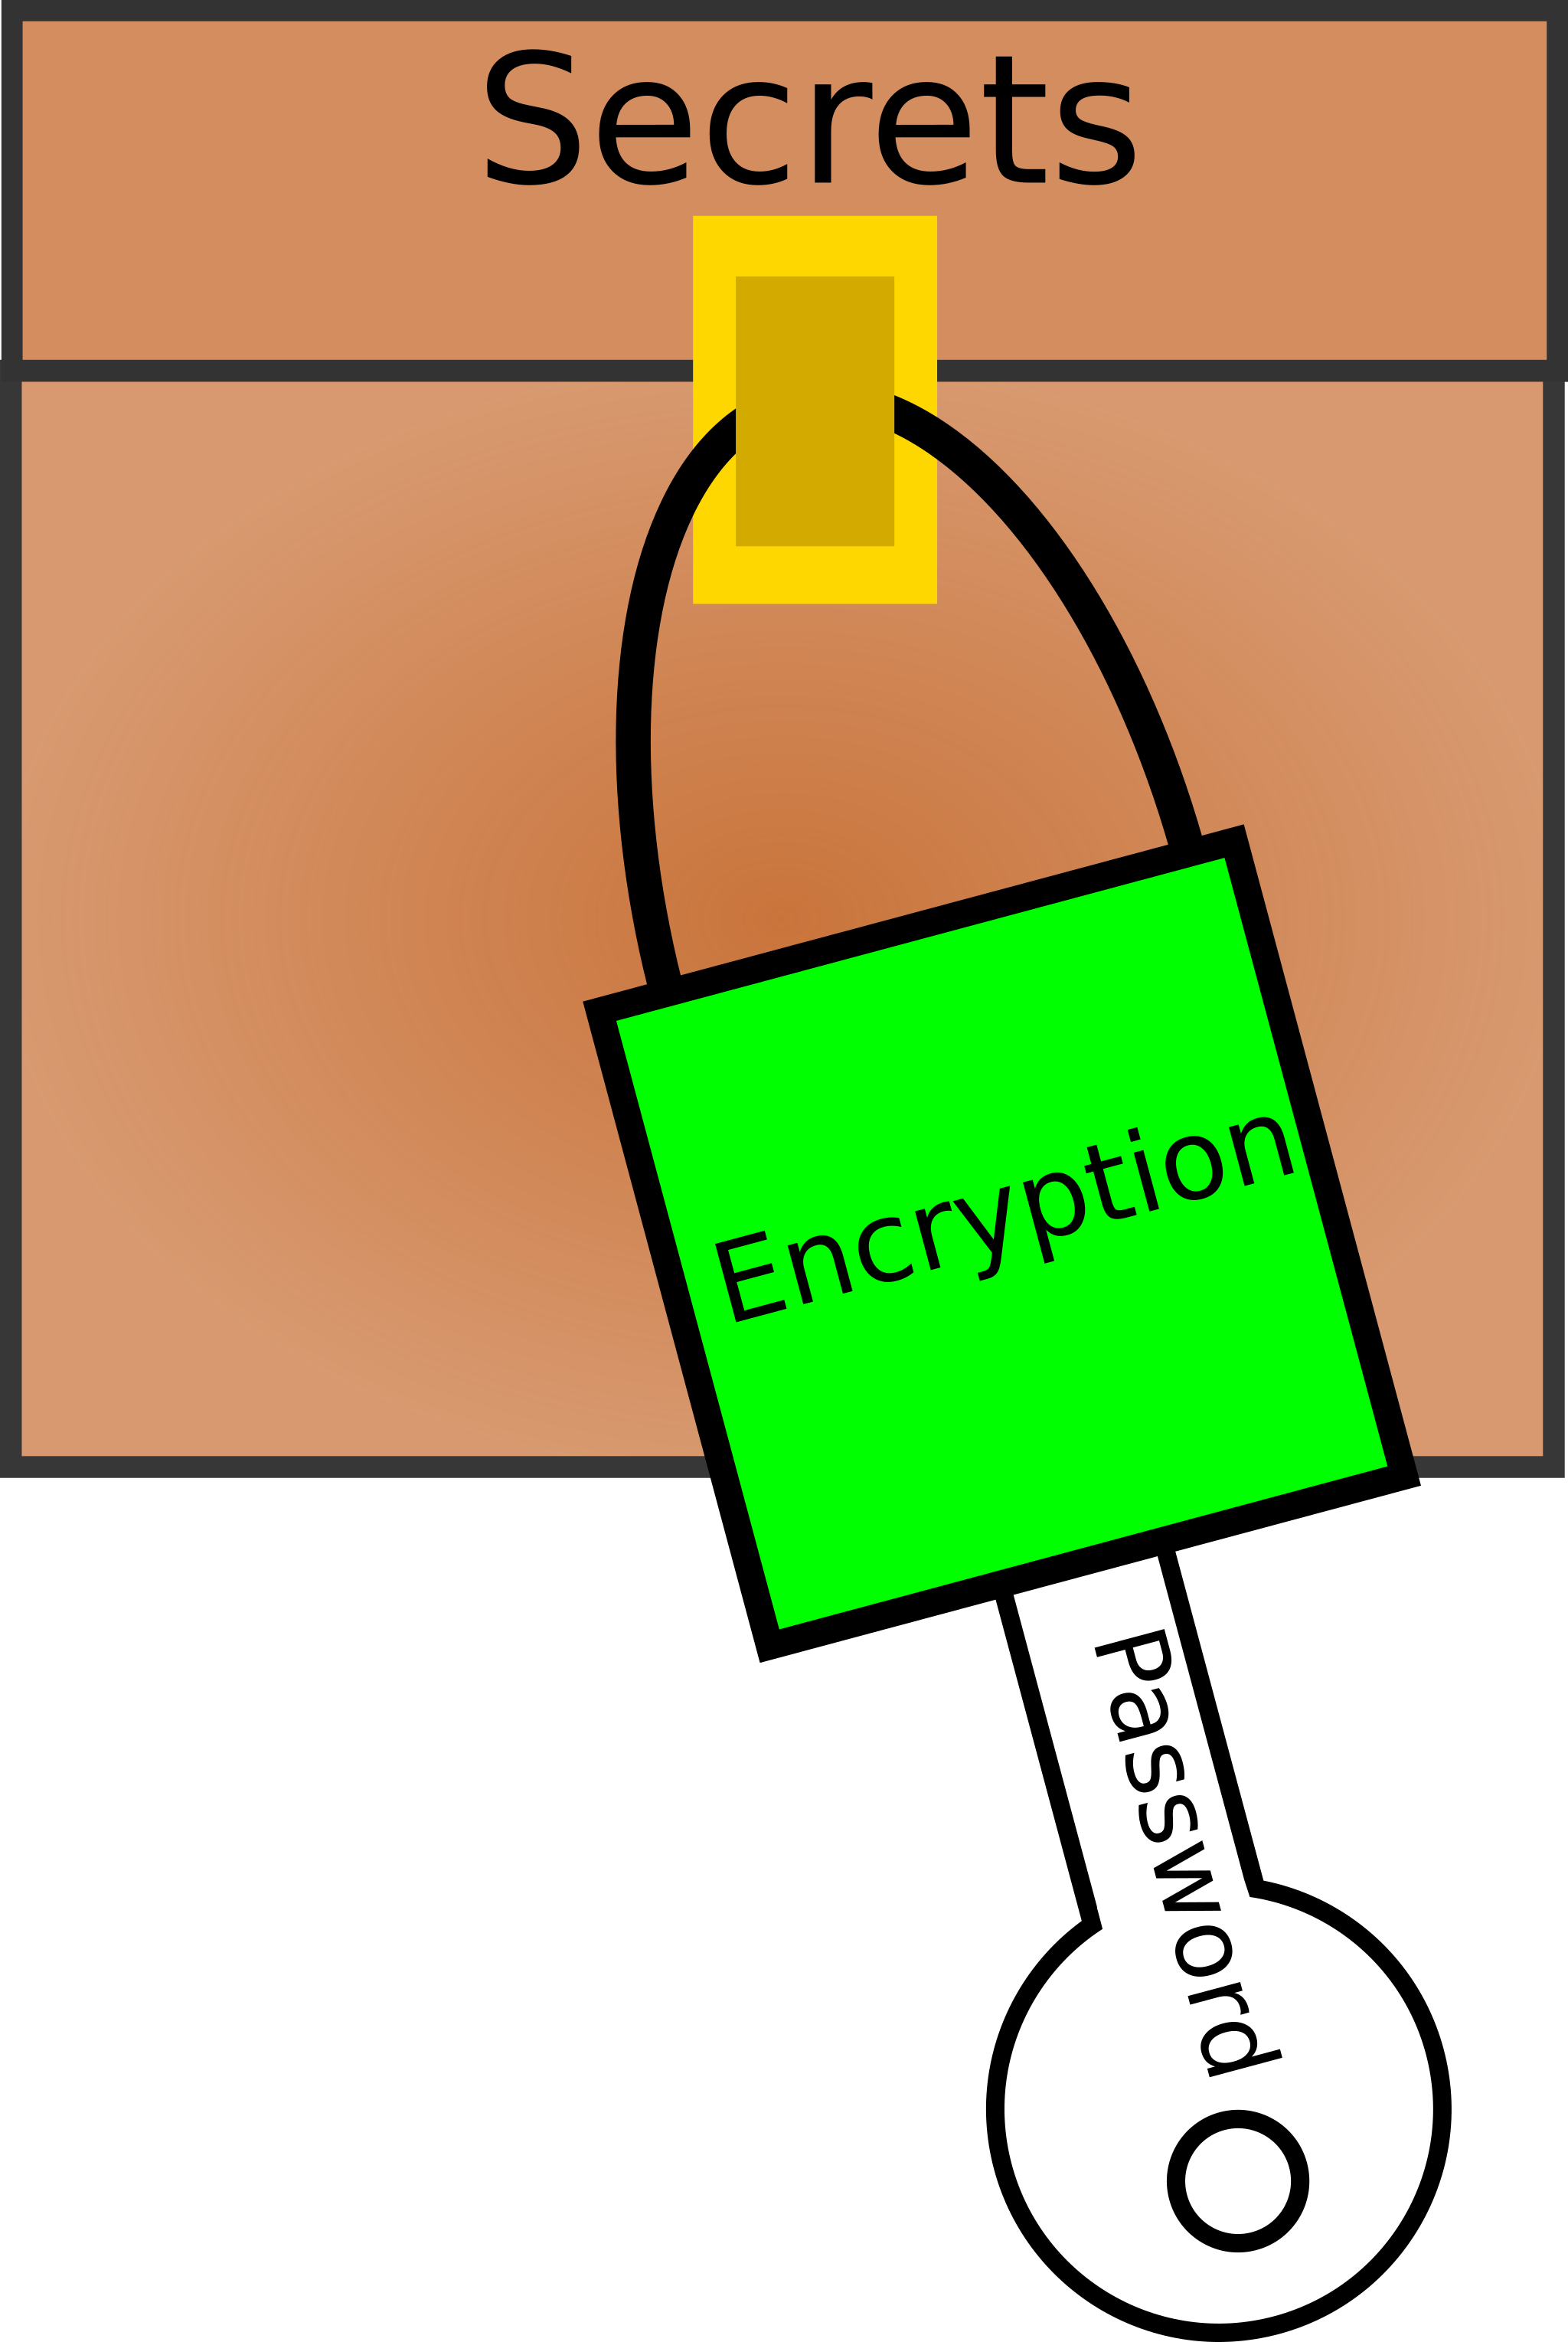 encryption-article-2